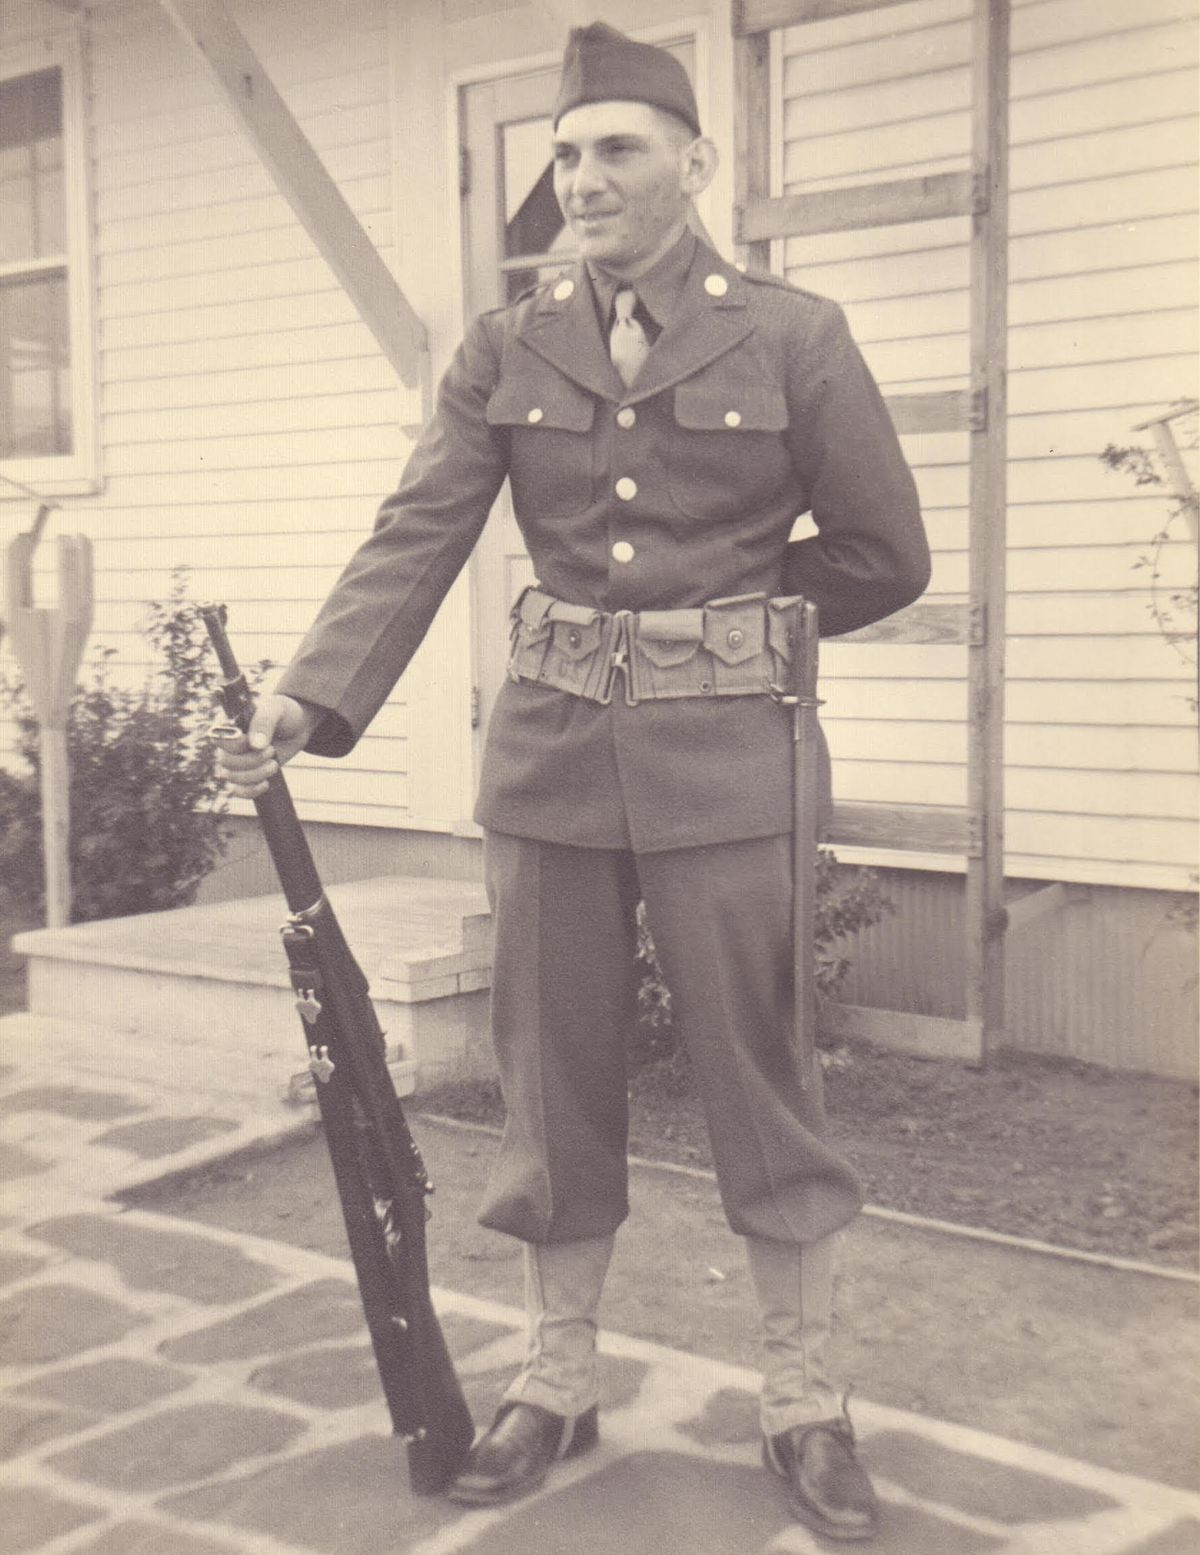 Arnie Massier served in the 3rd Infantry Division.